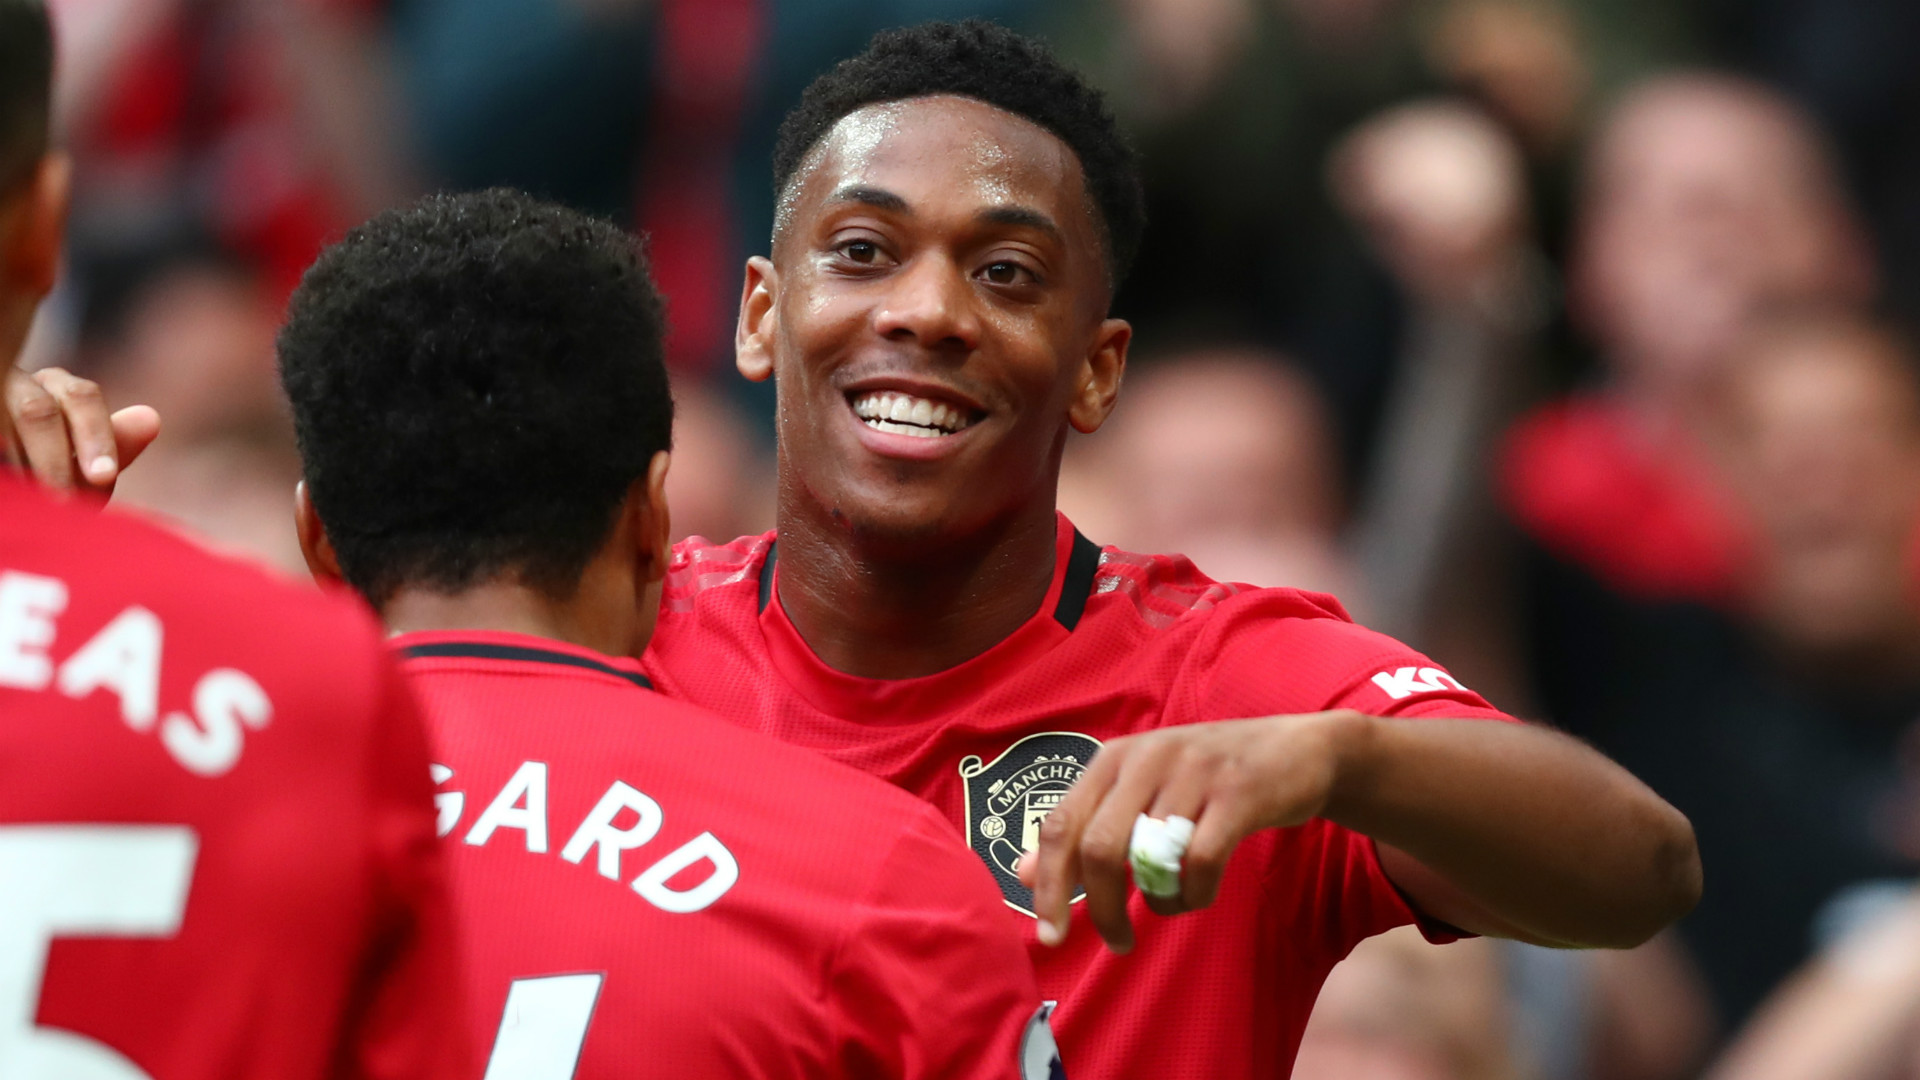 Man Utd star Anthony Martial baffles fans with bold new look - Bóng Đá